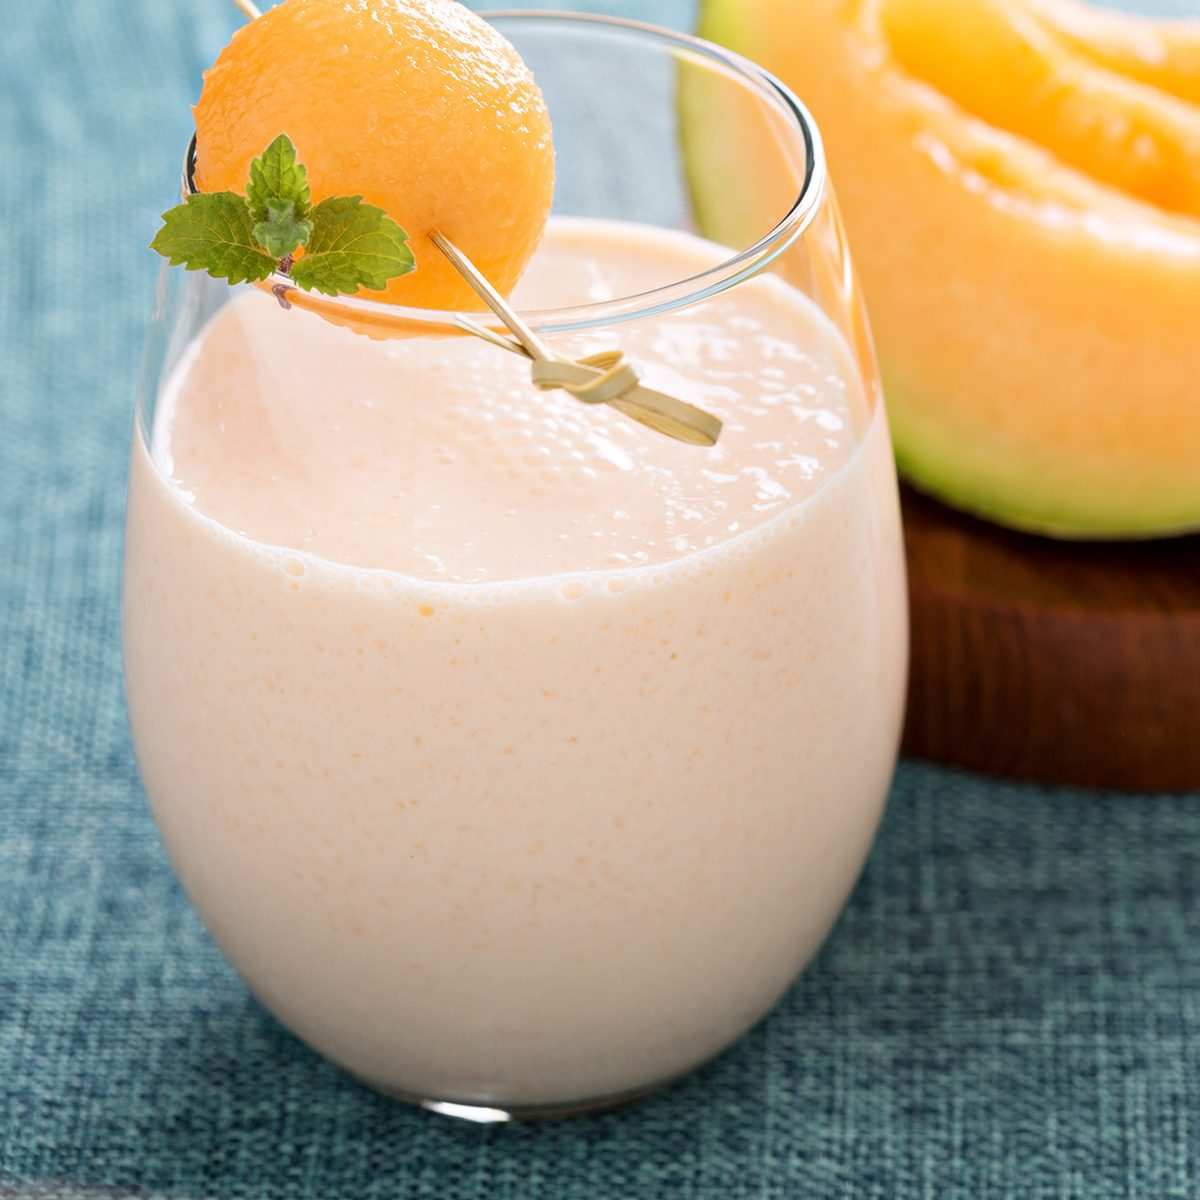 Melon smoothie on a table with light blue linen